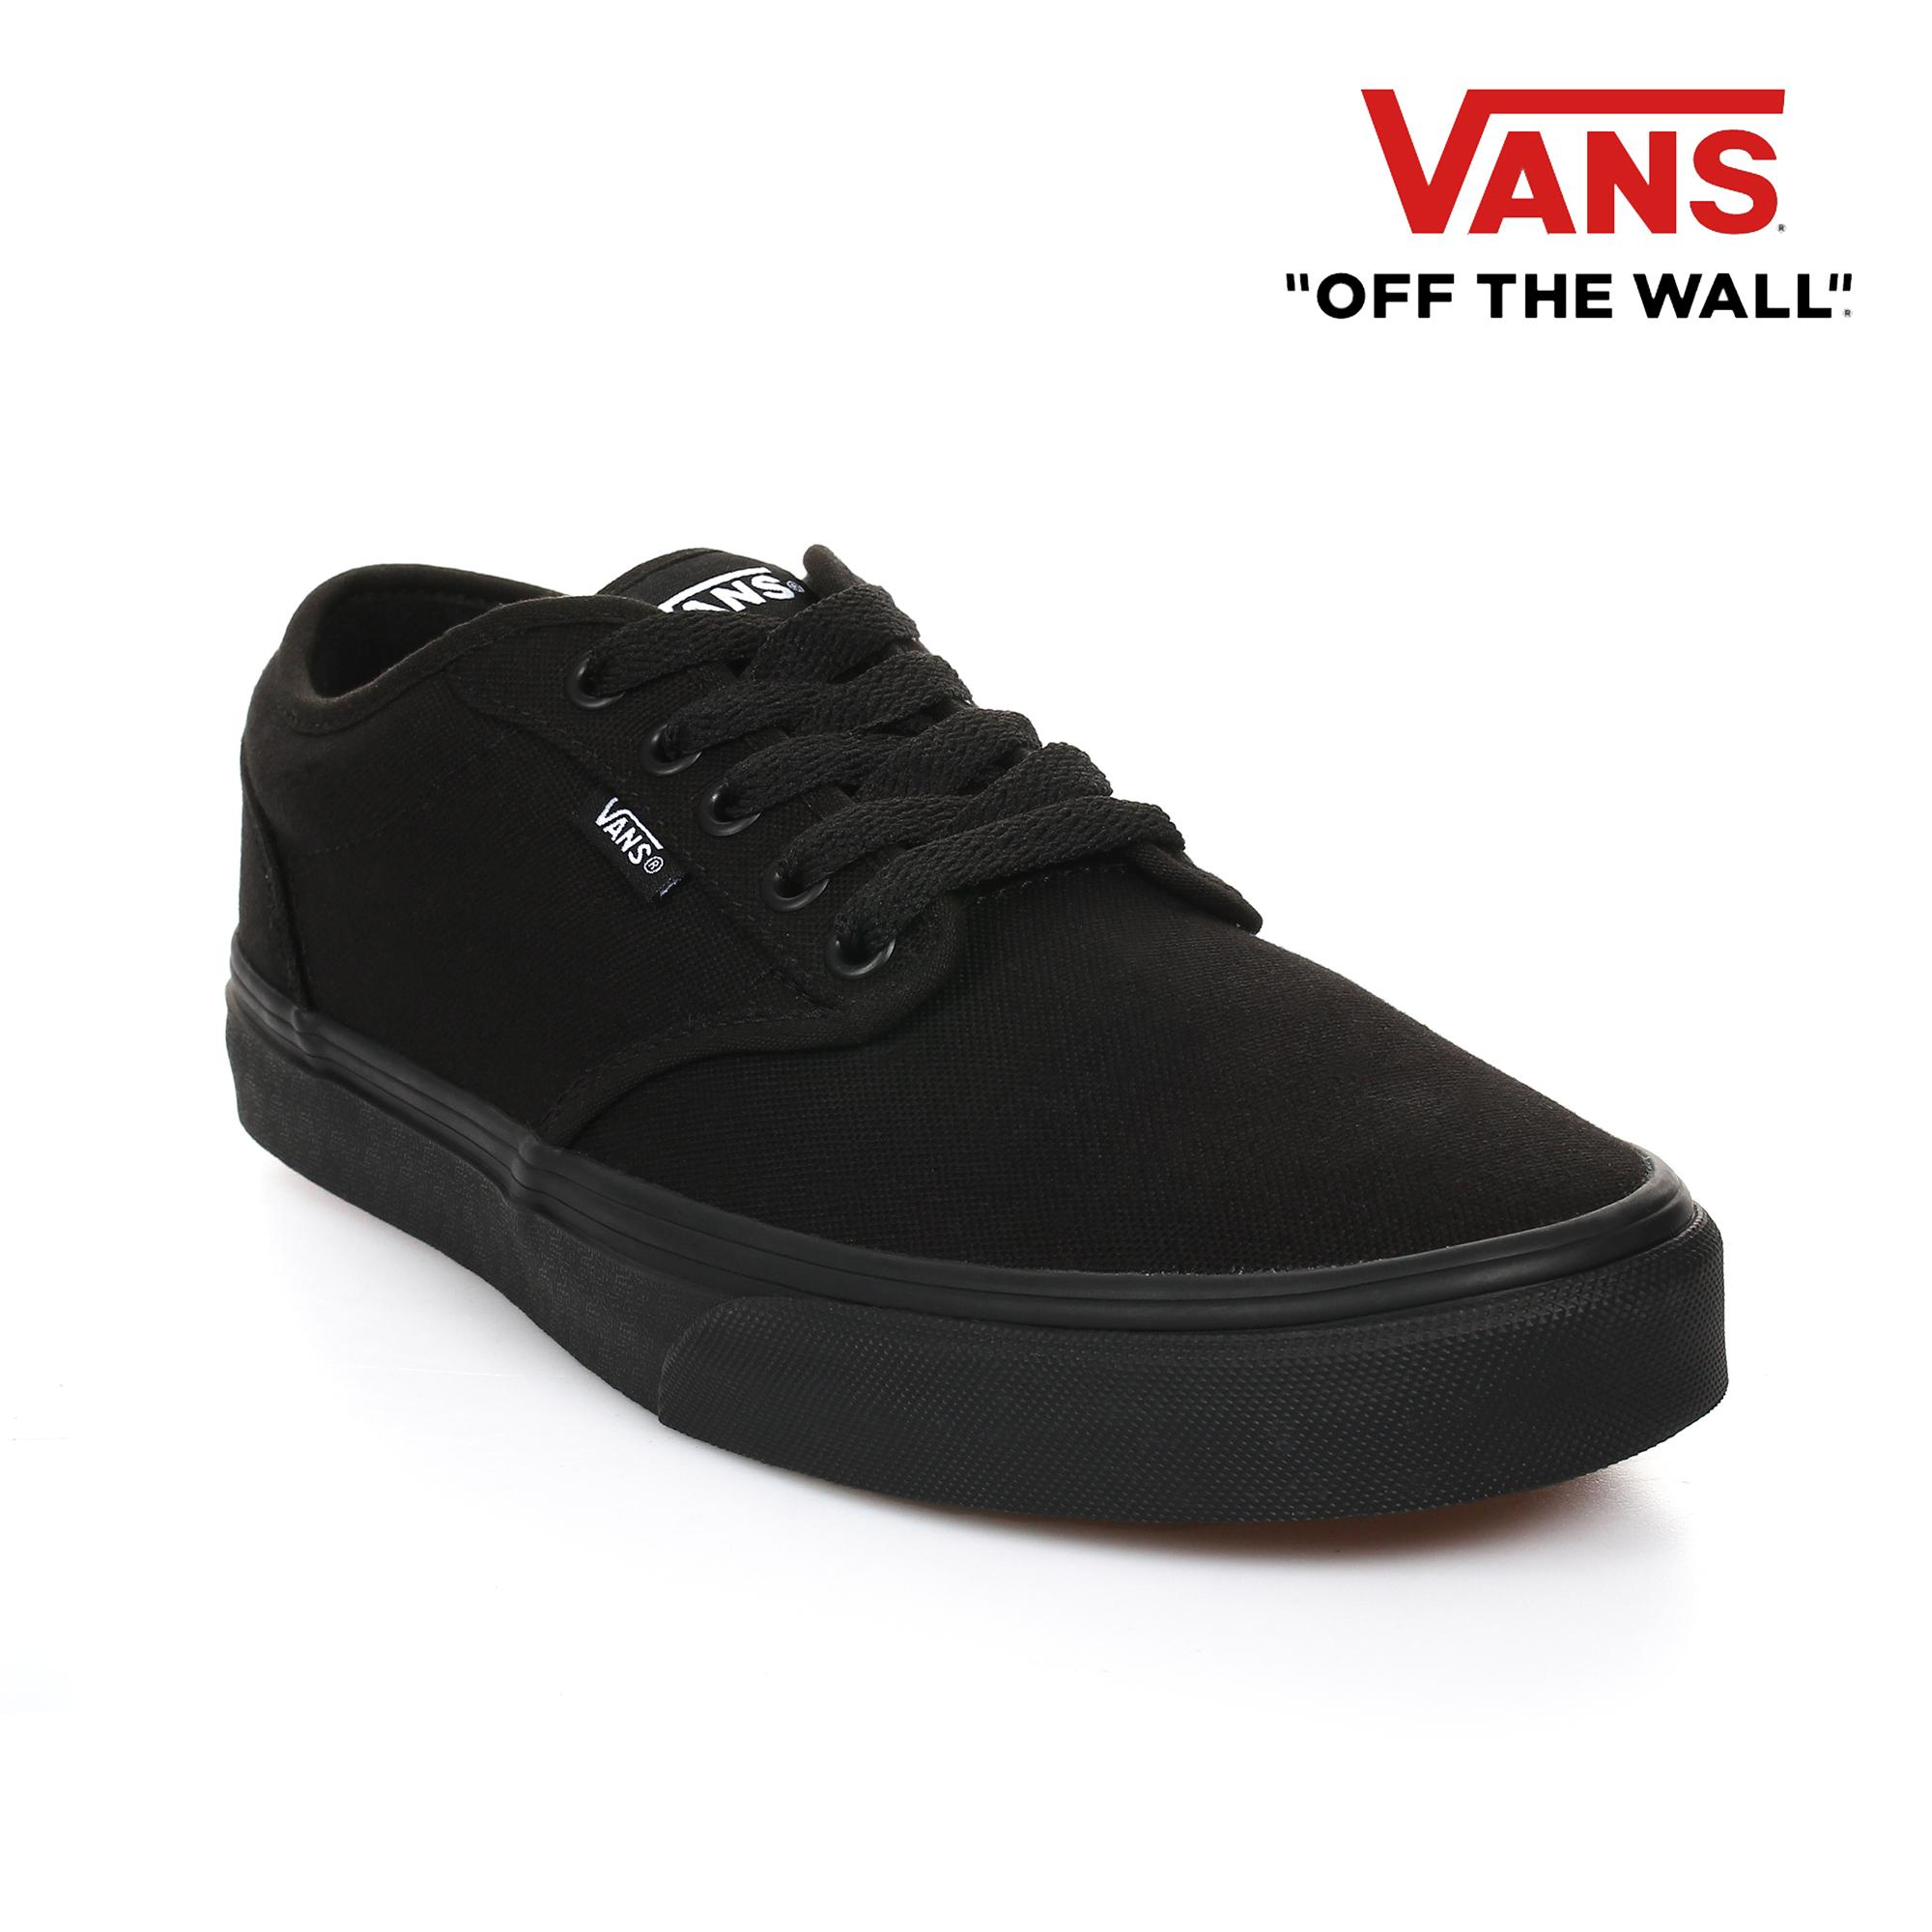 Vans Shoes for Men Philippines - Vans Men s Shoes for sale - prices    reviews  1ef83899664